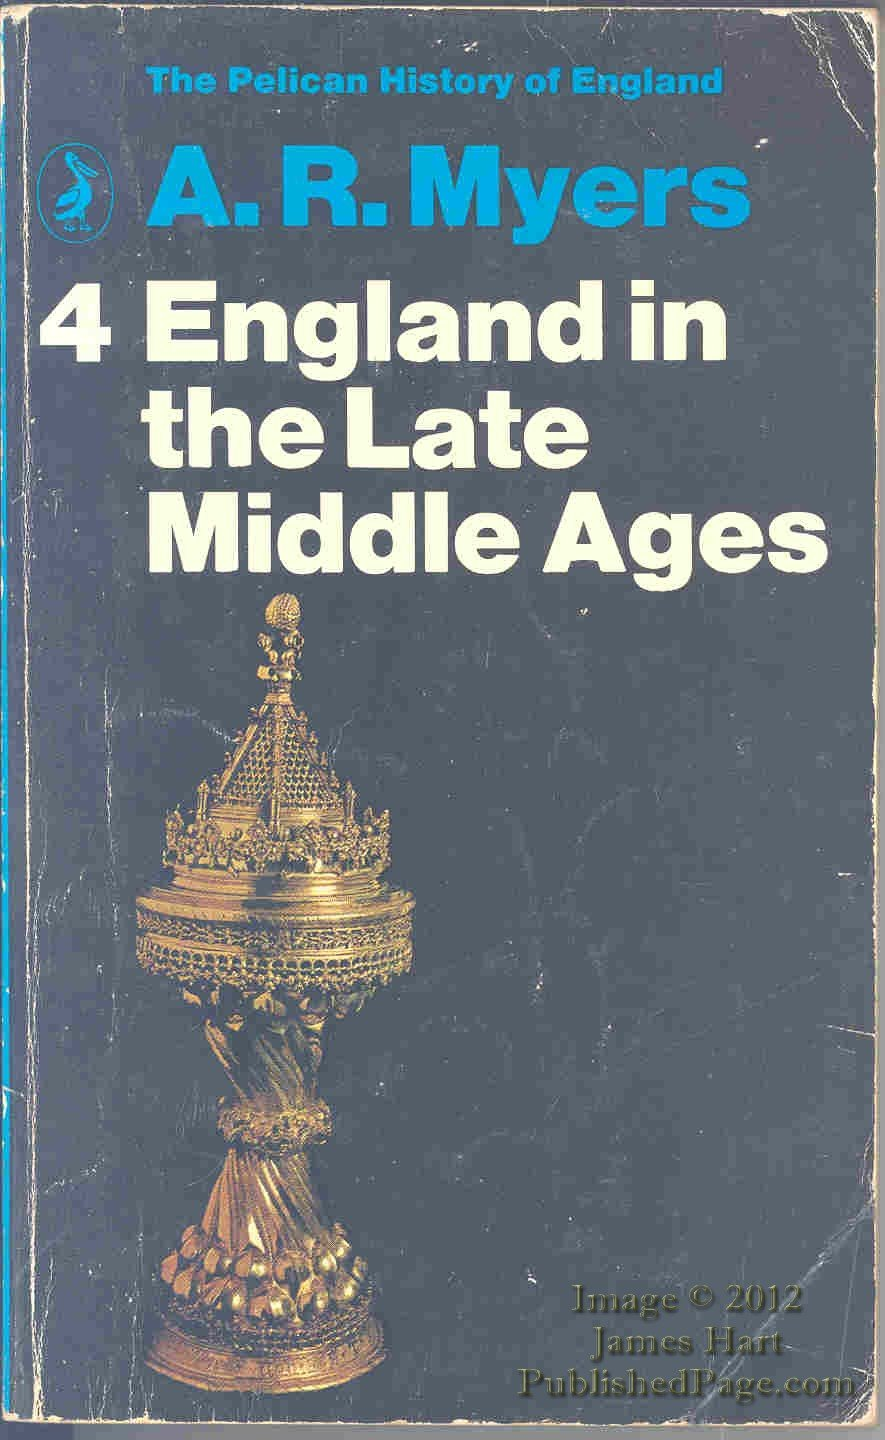 Fiction of England in the Middle Ages: a selection of sites